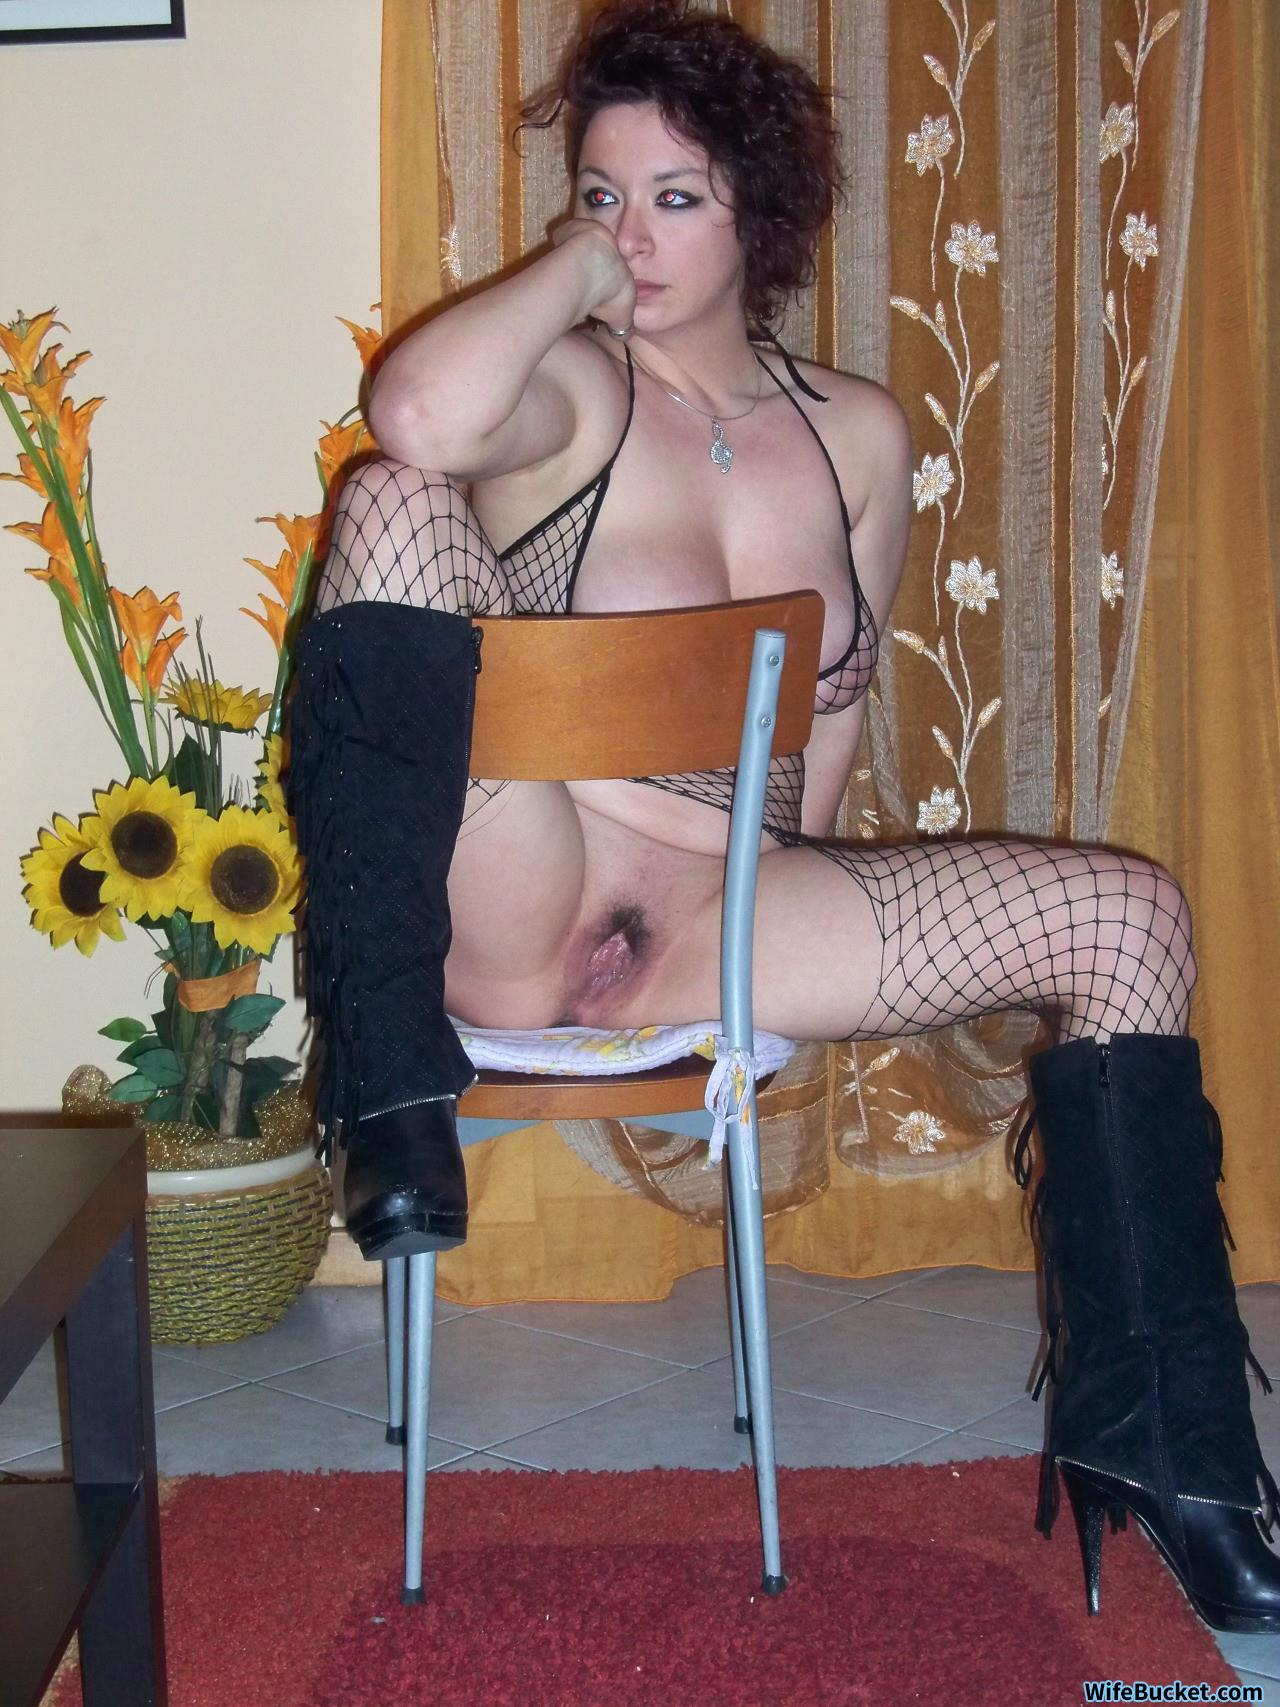 Blog milf picture gallery